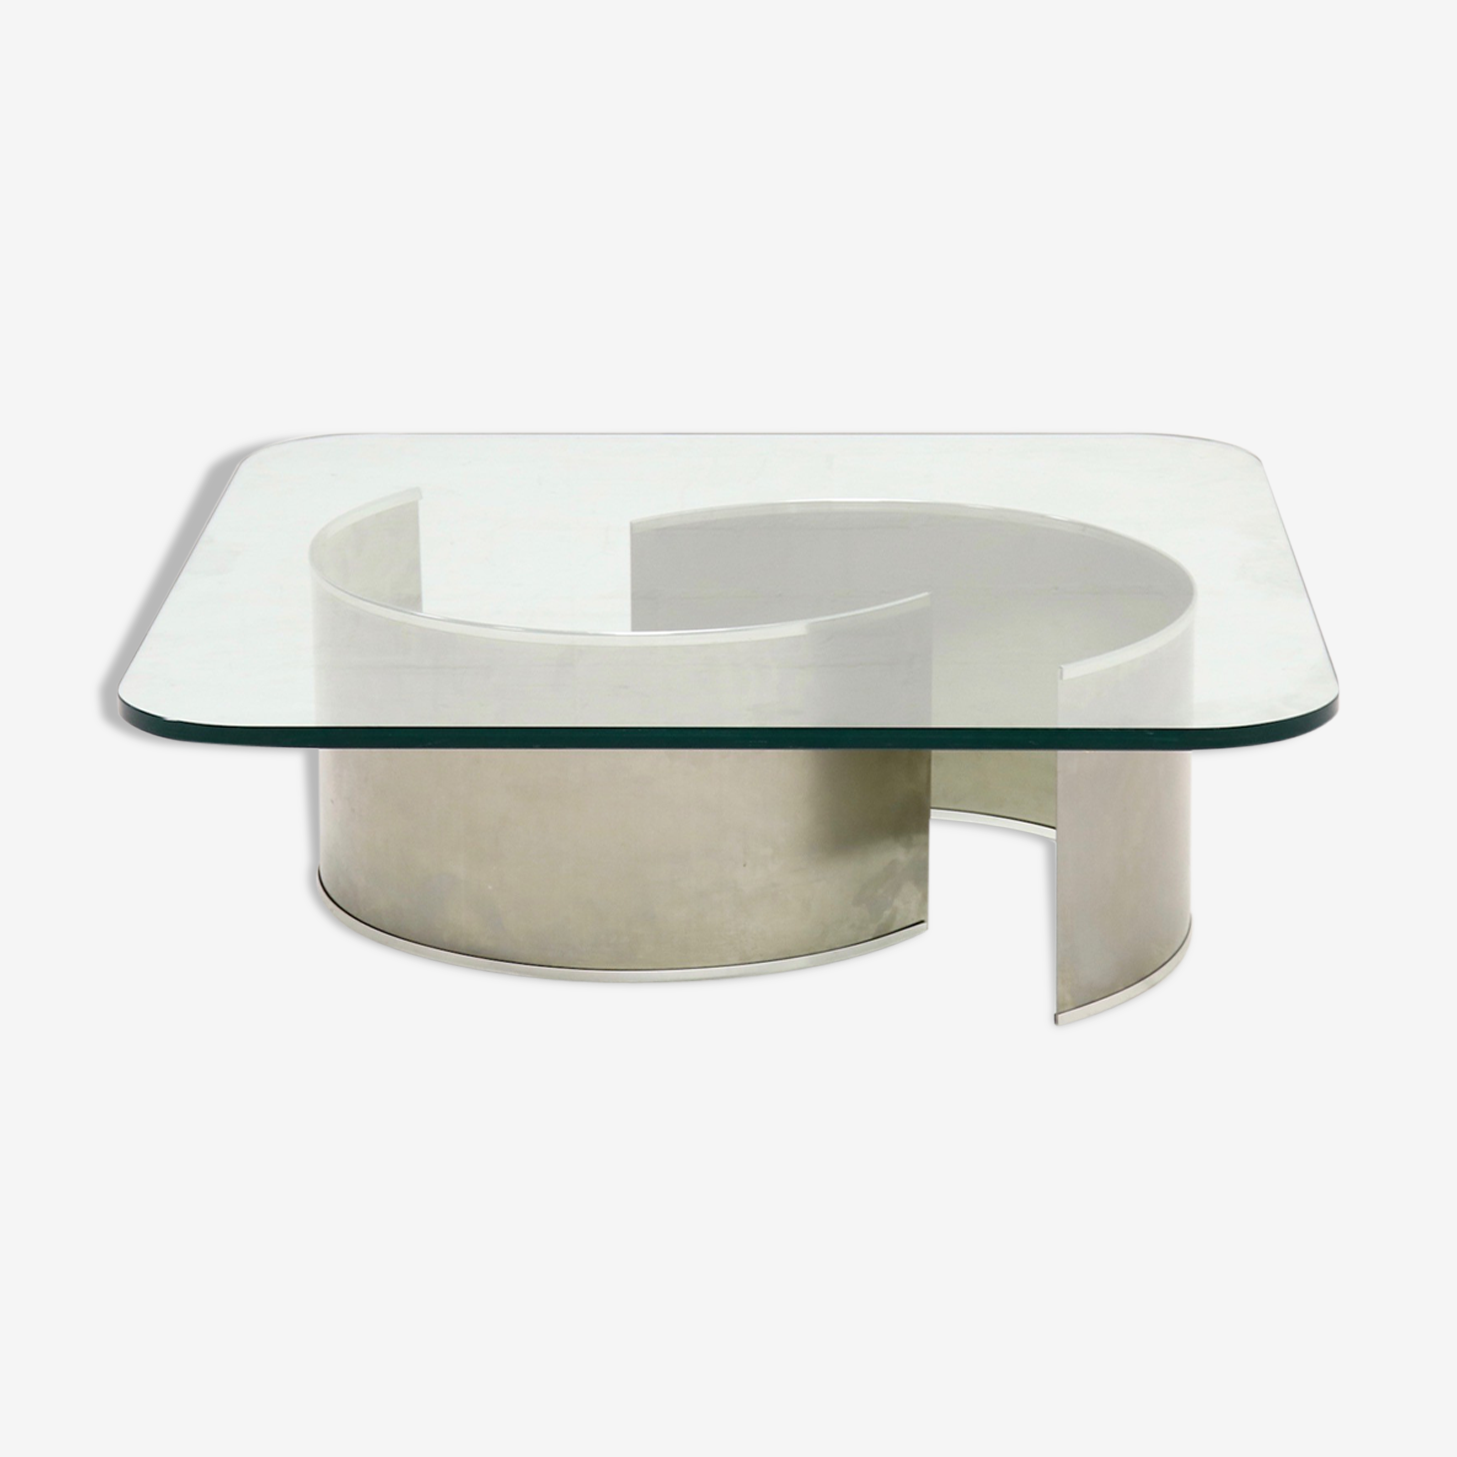 Luxury stainless steel and glass french coffee table 1970